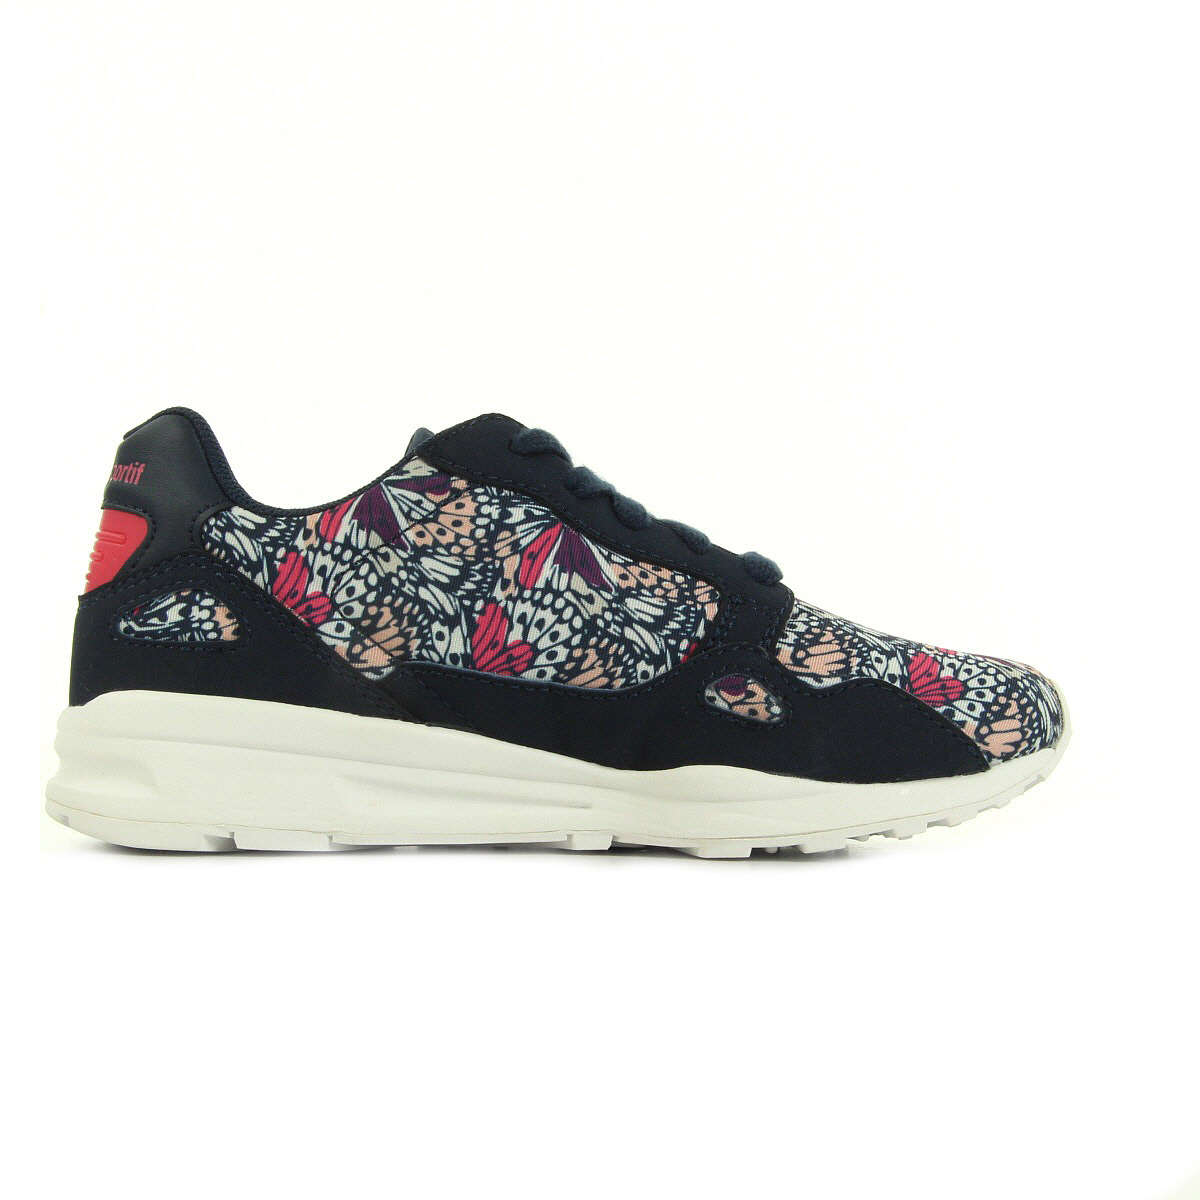 le coq sportif lcs r900 gs butterfly 1620528 chaussures homme homme. Black Bedroom Furniture Sets. Home Design Ideas